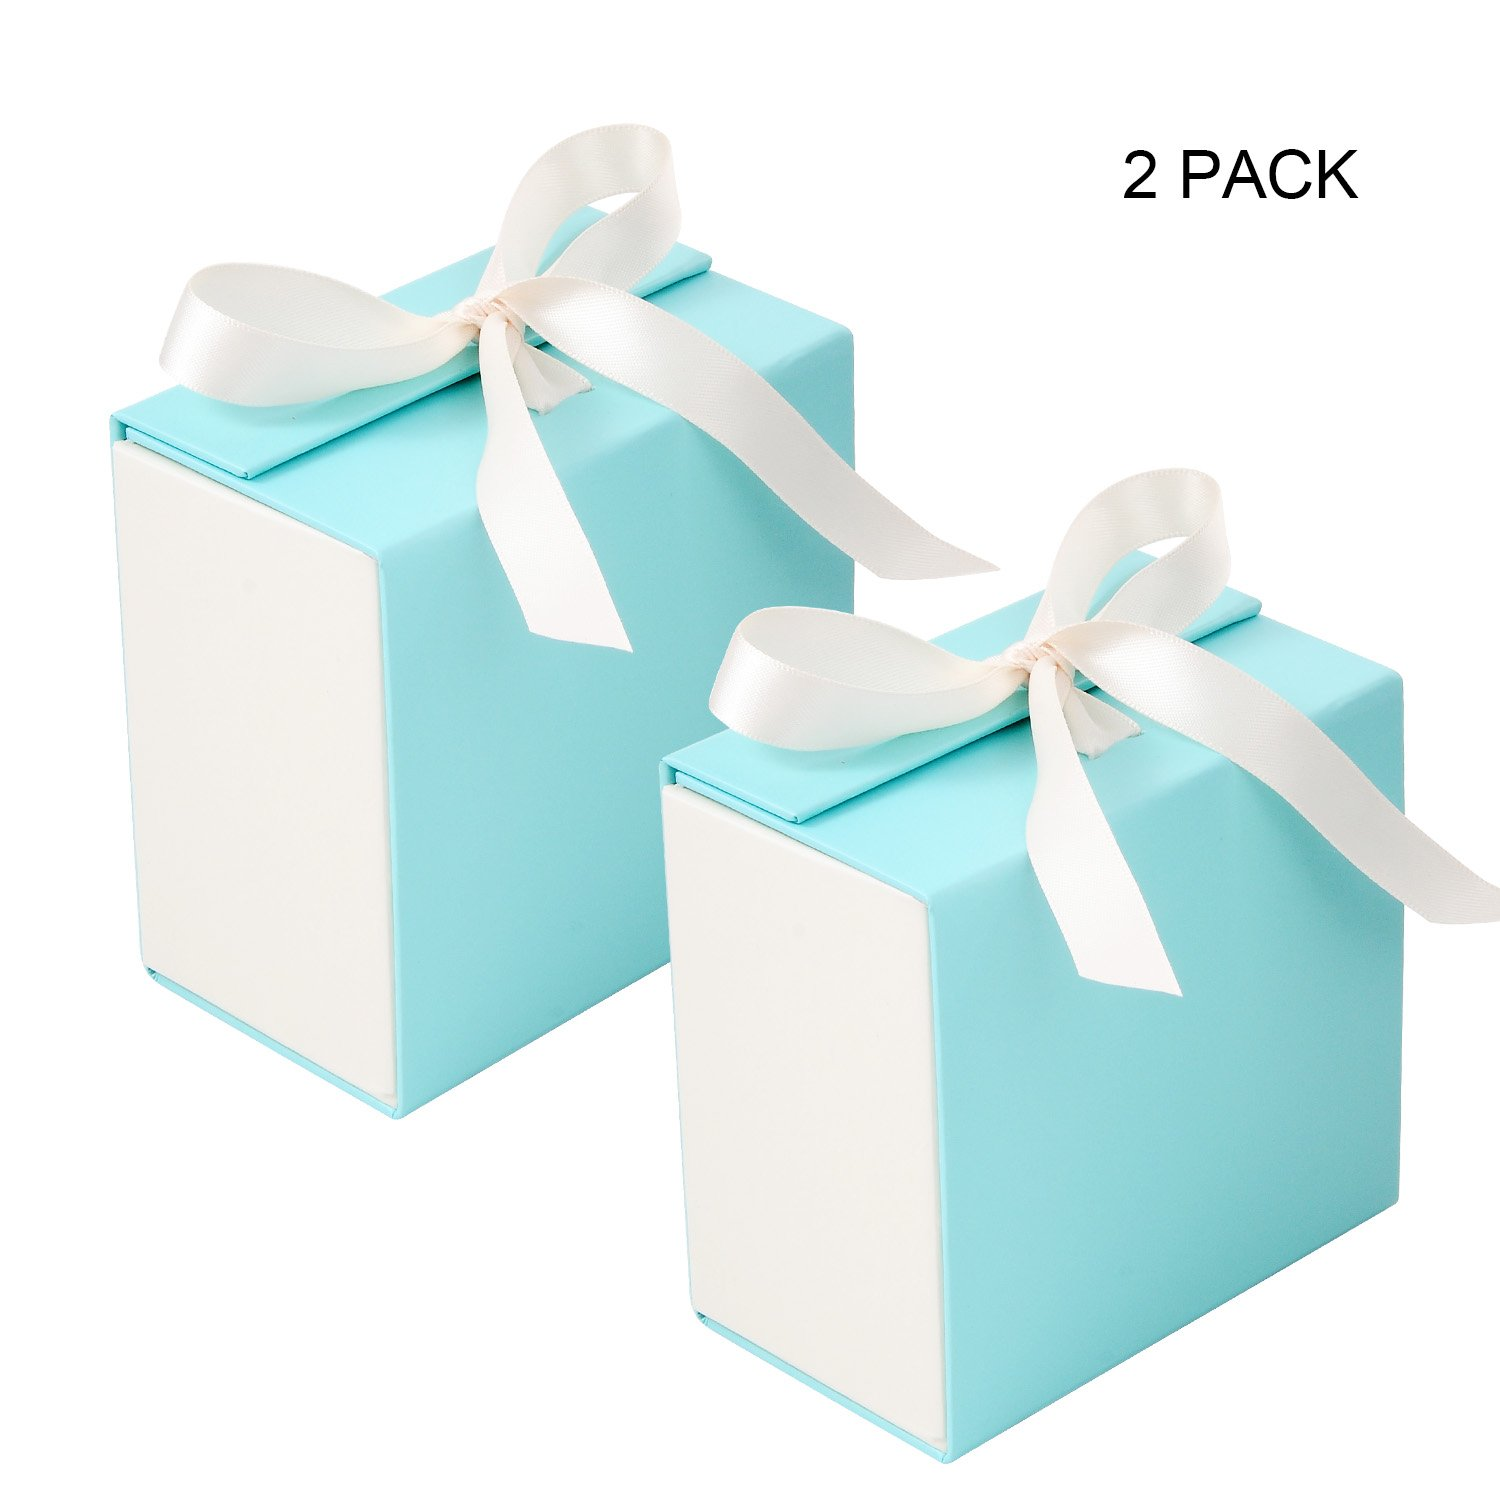 Gift Wrap Bags Boxes For Birthday Present Holiday Party Wedding Favor 7 8 L X 4 7 H 2pcs Ml